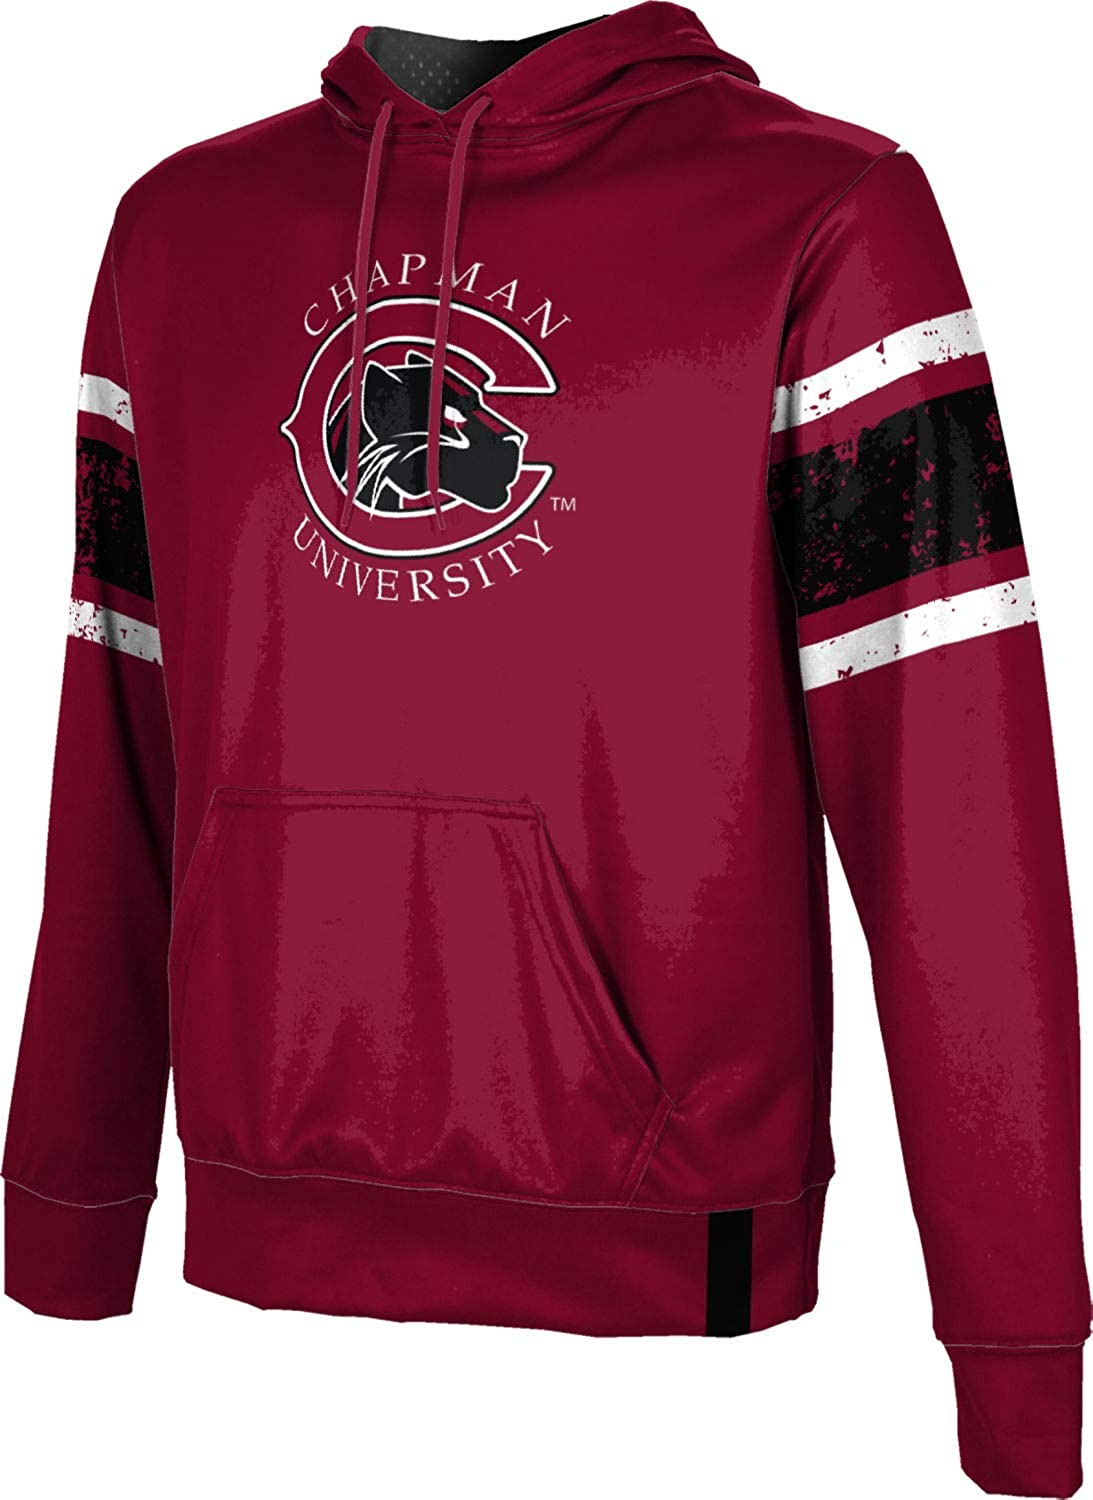 ProSphere Chapman University Boys' School Latest item Hoodie Spiri Special price for a limited time Pullover